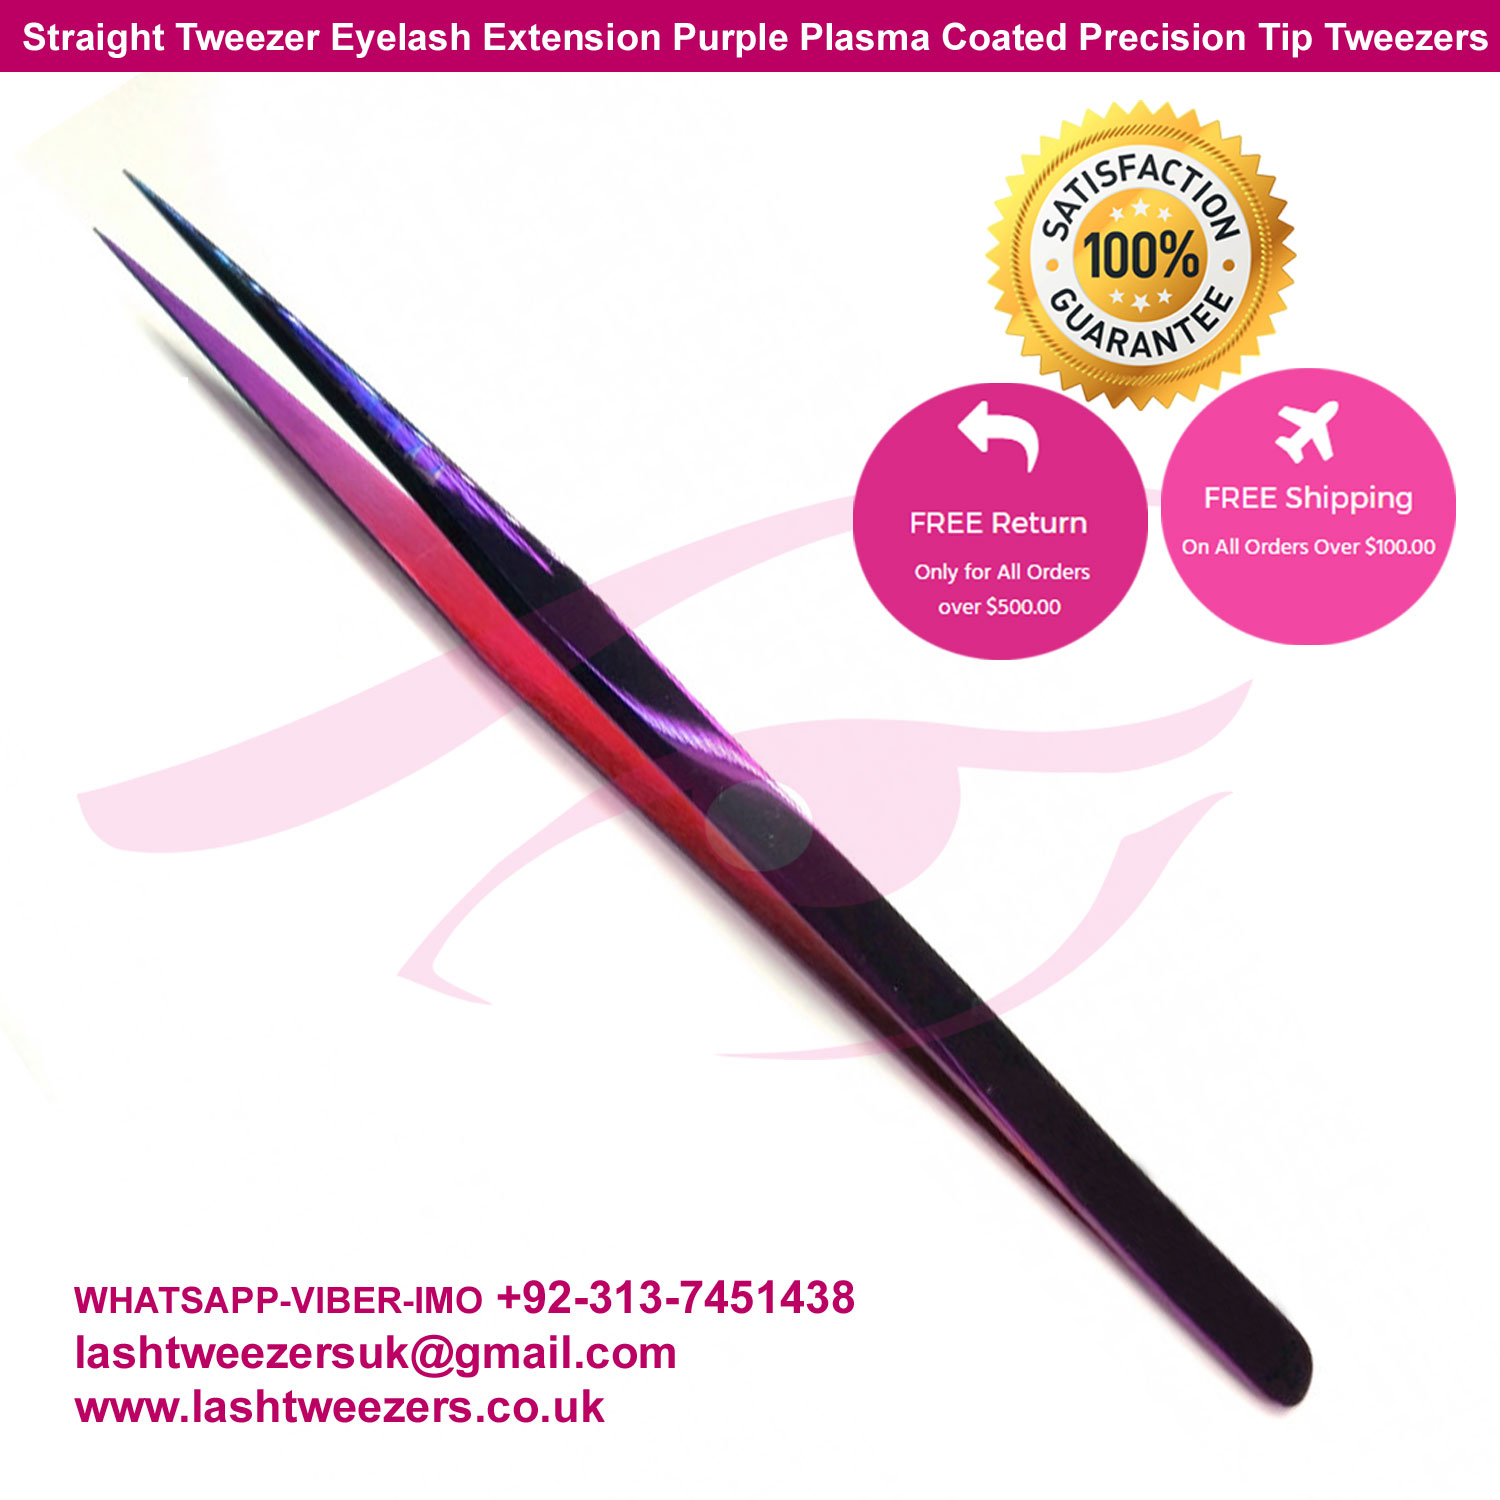 Straight Tweezer Eyelash Extension Purple Plasma Coated Precision Tip Tweezers